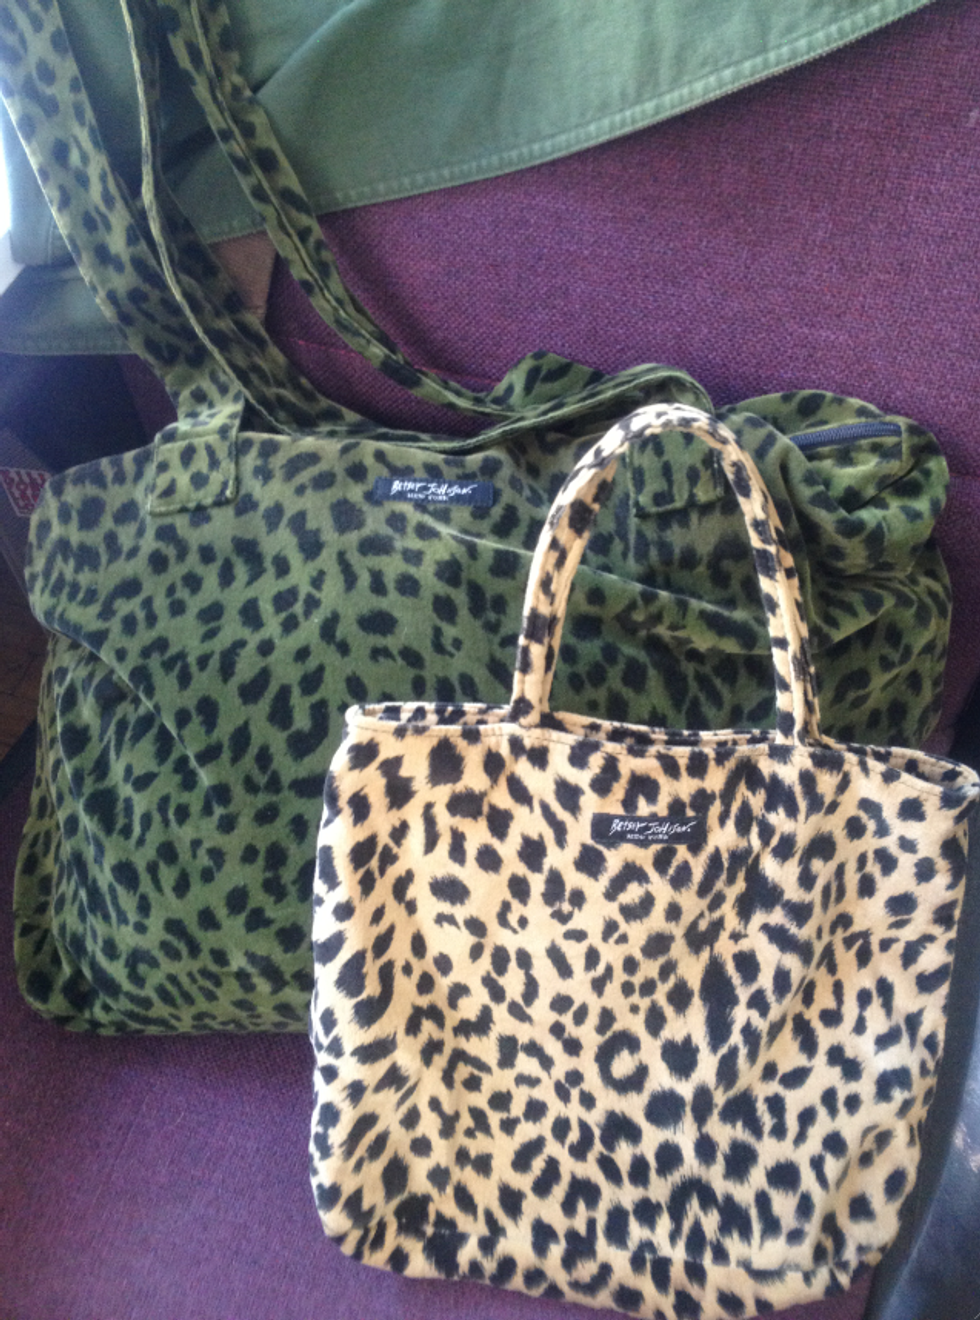 My eBay Quest for the Perfect Vintage Betsey Johnson Tote